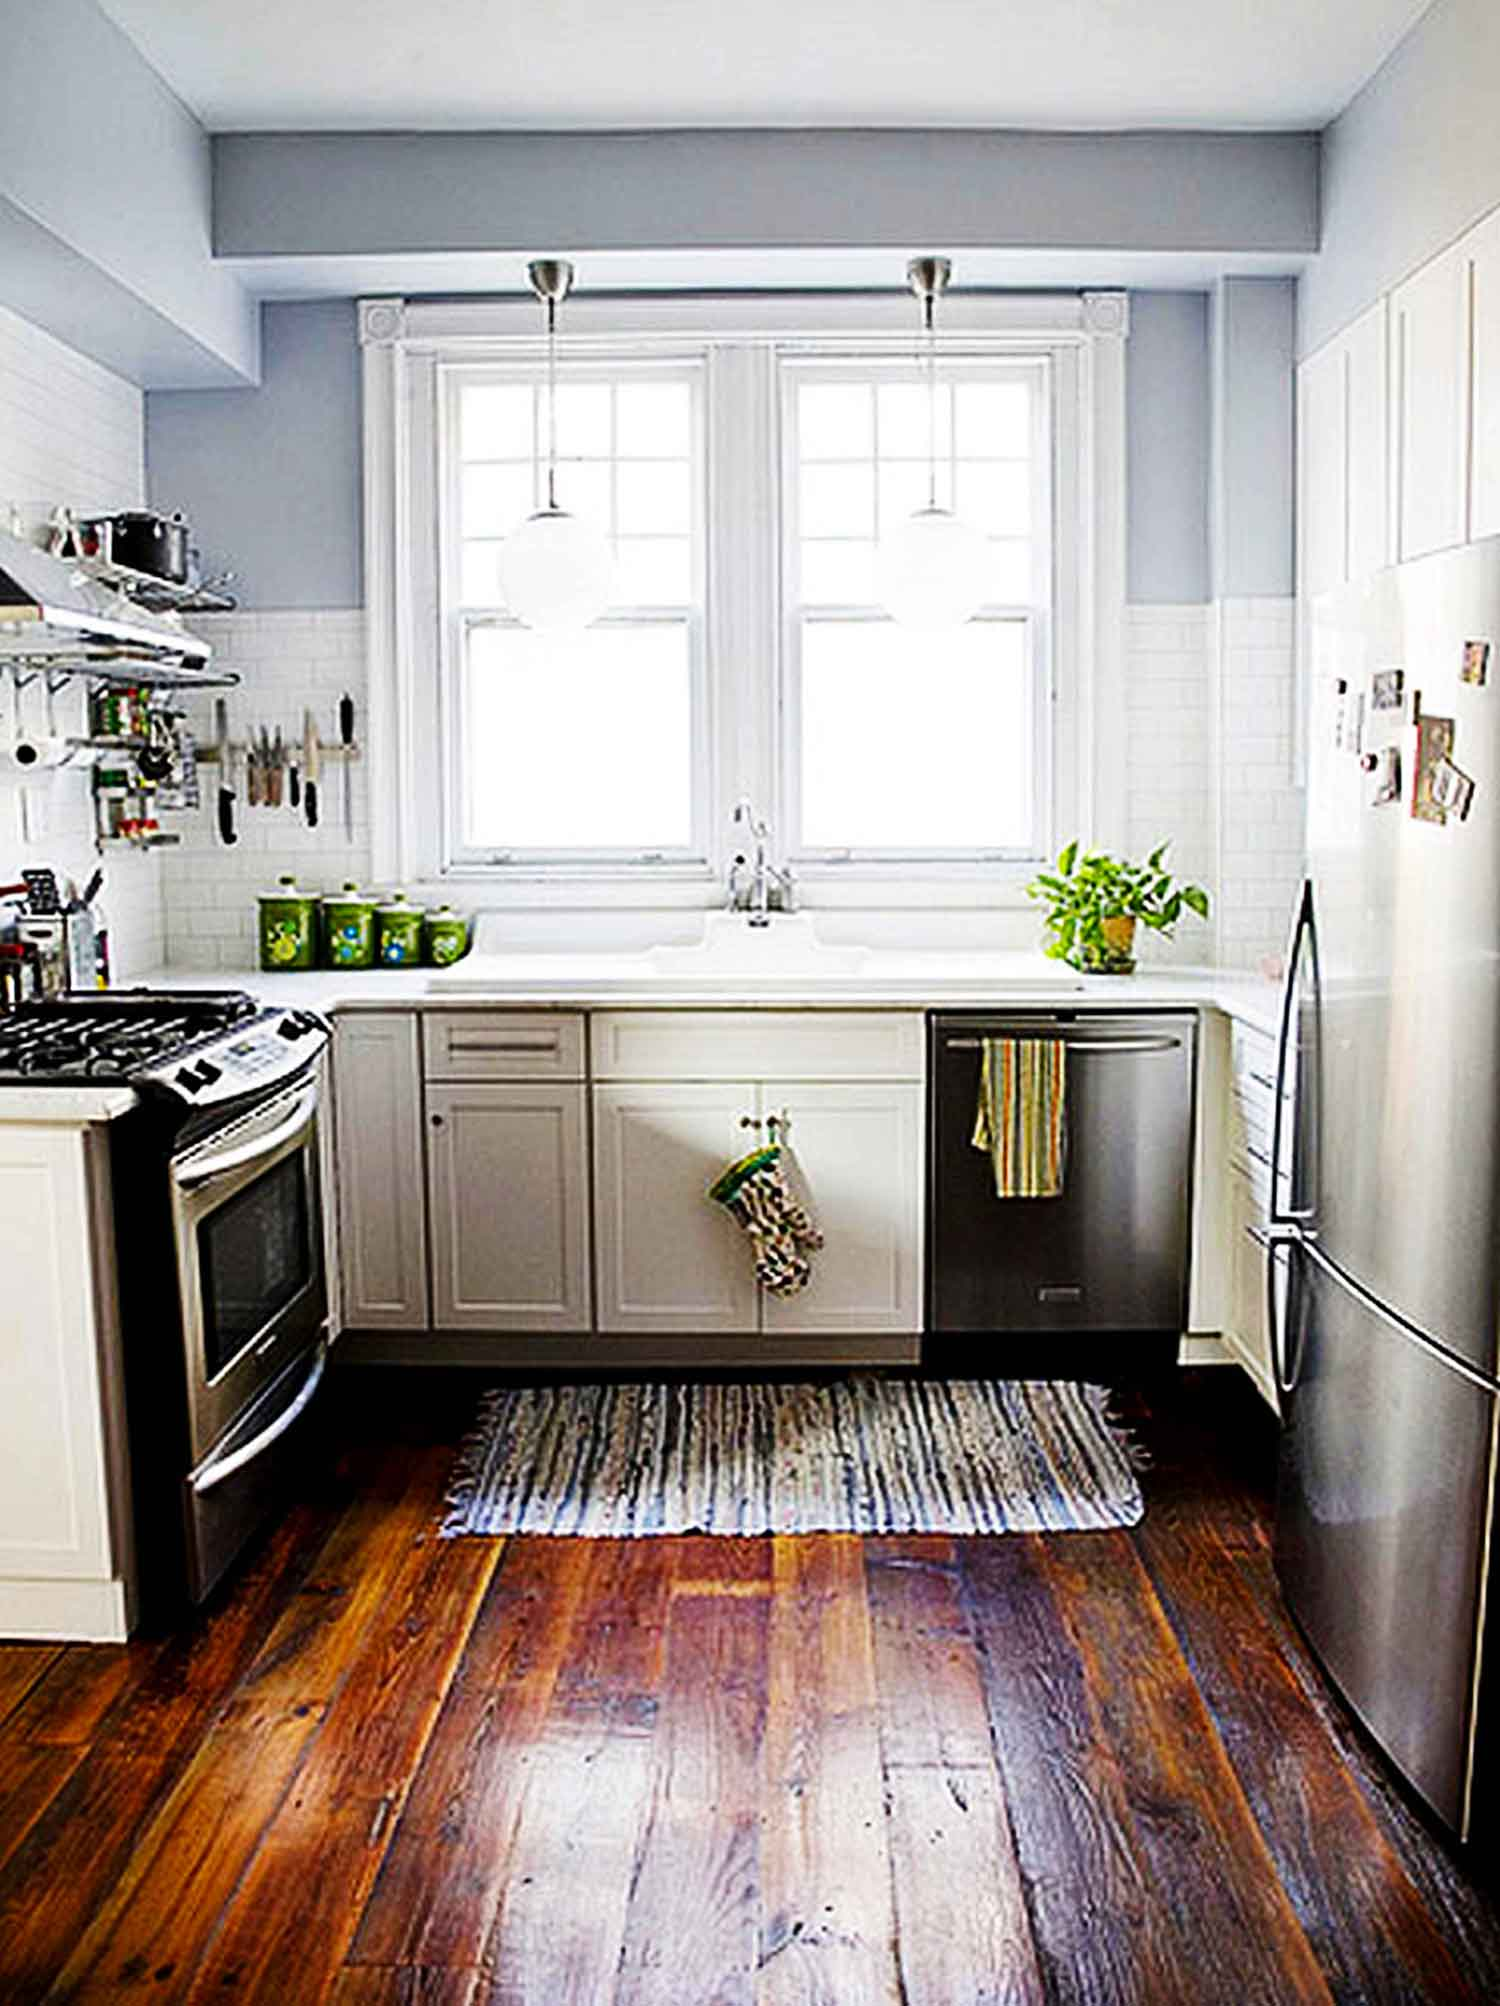 ideas-for-small-kitchens-design-ideas-for-contemporary-small-kitchen-layouts-with-large-windows-kitchen-and-small-kitchen-photos